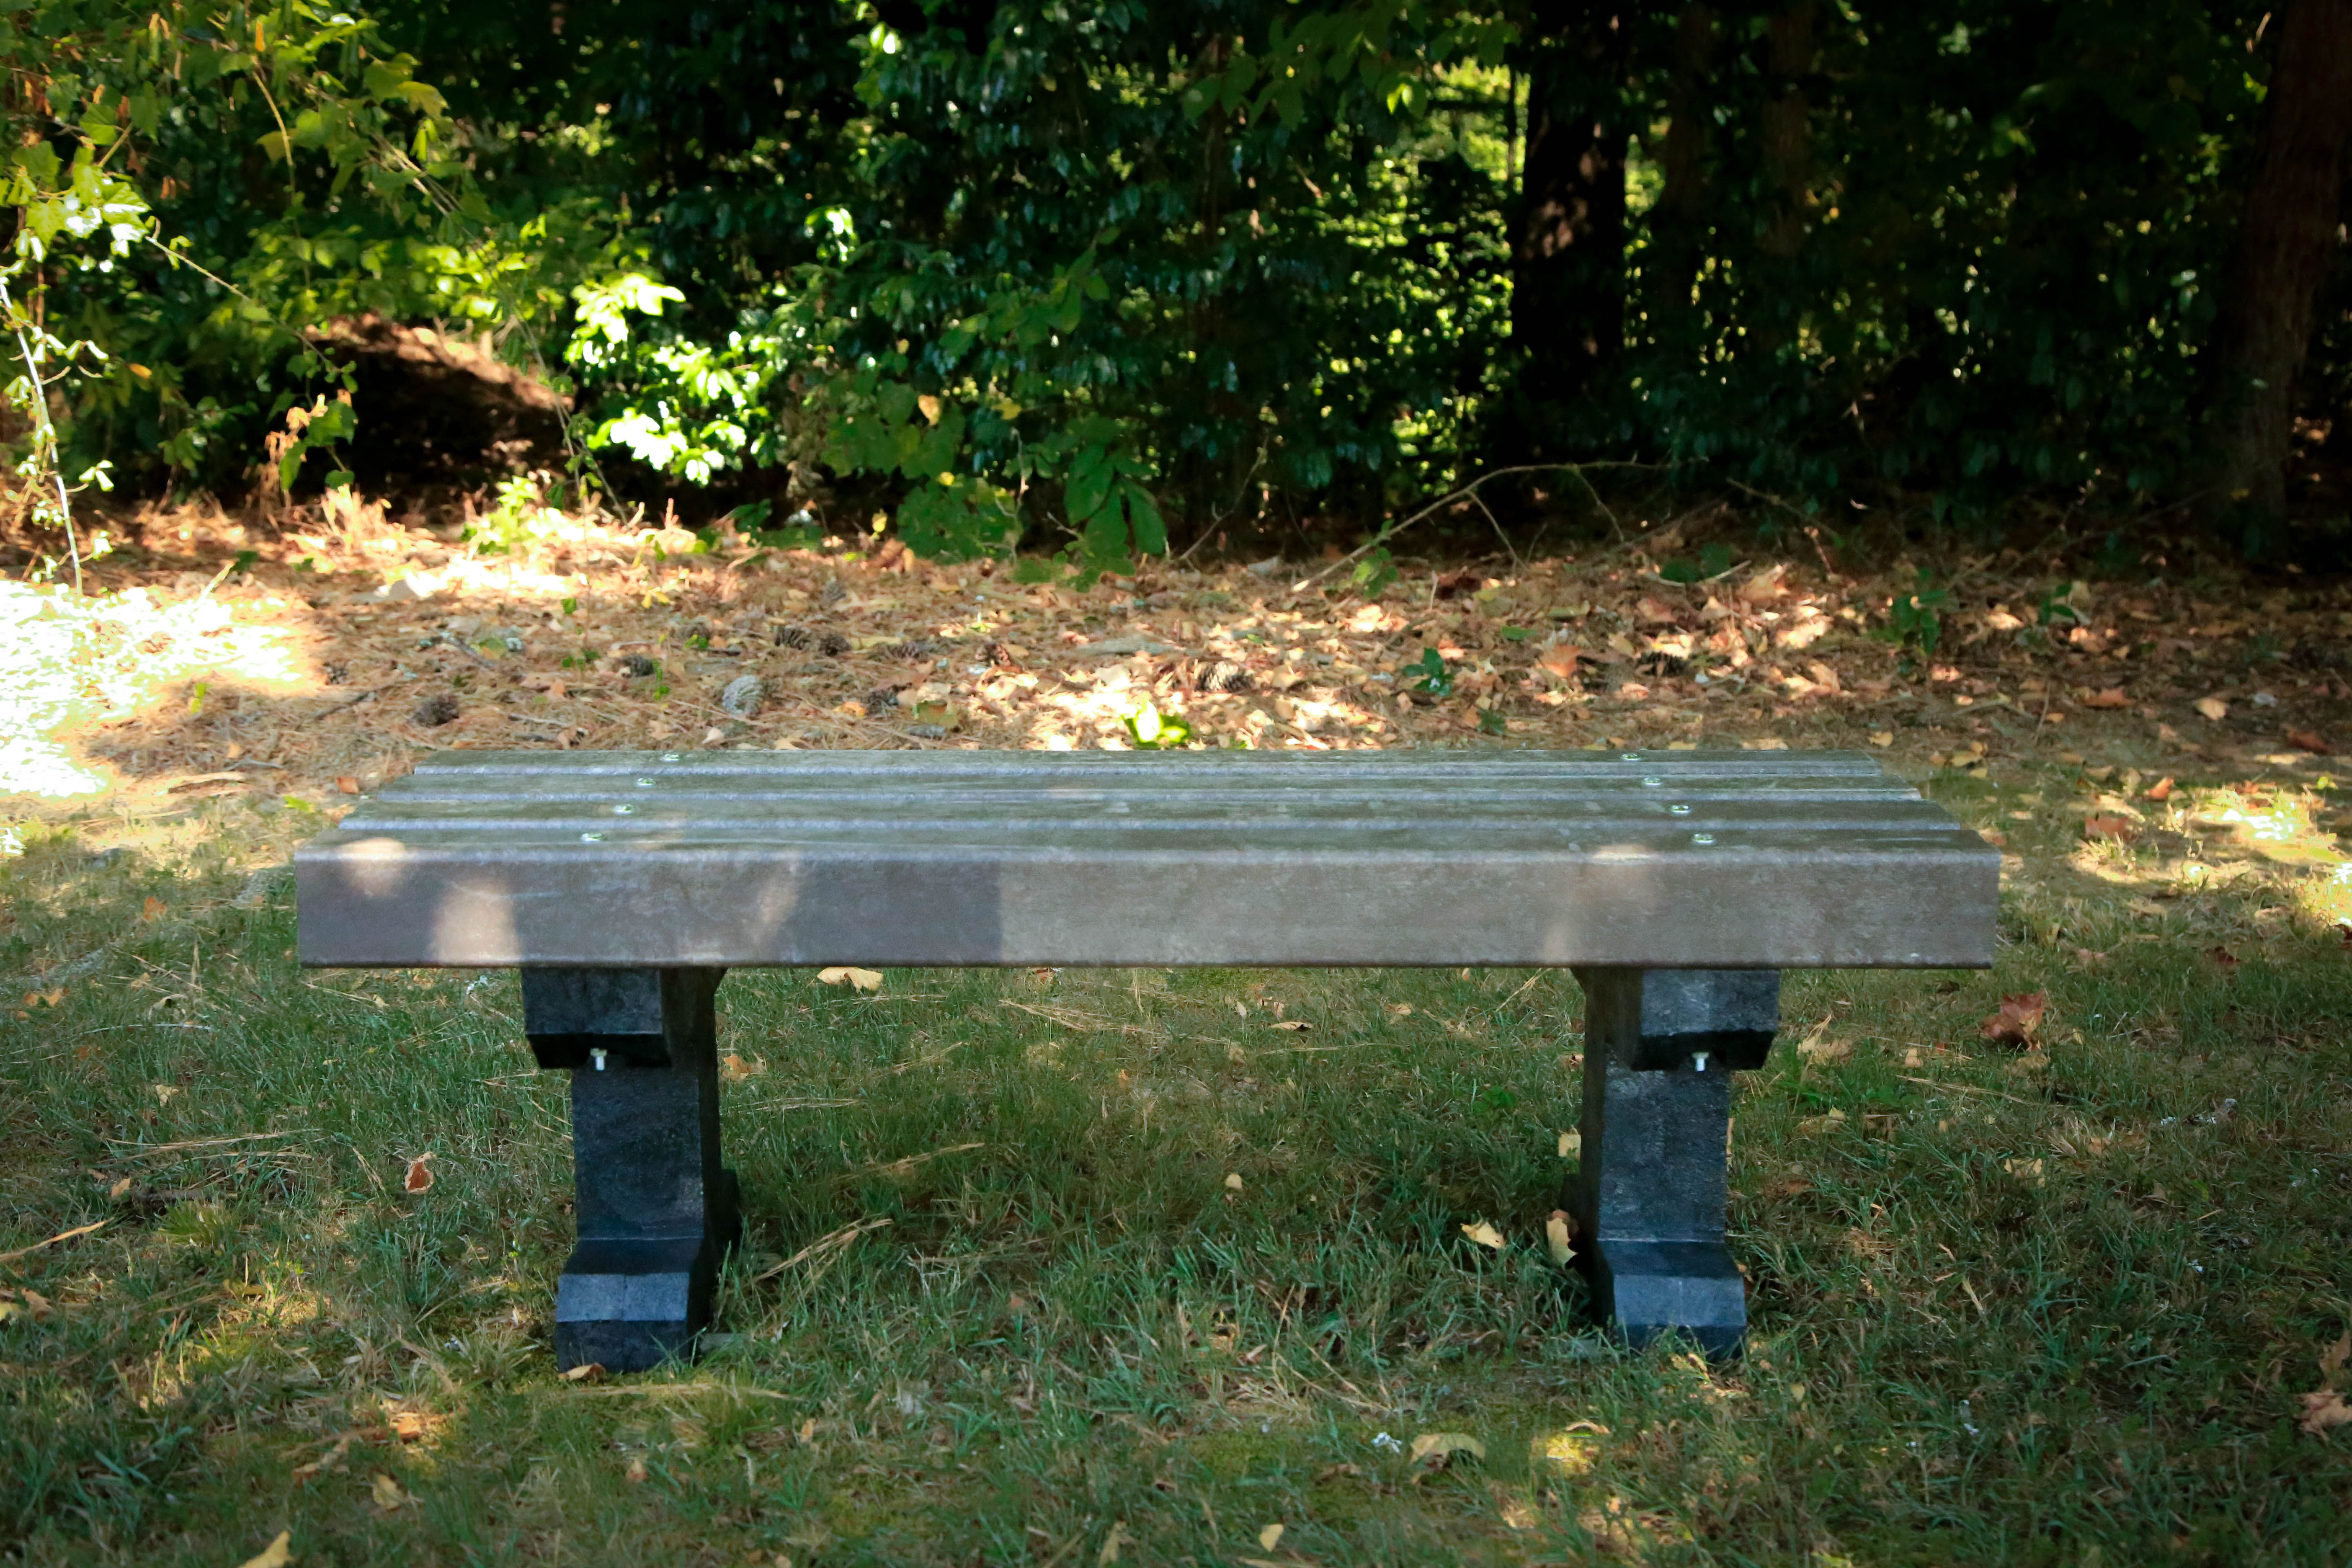 Donations of $1,500 or more are eligible to receive a bench made from plastic water bottles collected and upcycled from the 50th Running of the AJC Peachtree Road Race. Donors have the option to include a commemorative plate displayed on the center panel. Benches come in two designs; Design one is without a back and is a gift with donations of $1,500 or more, Design two has a back panel and is a gift with donations of $2,000 or more.  Both designs can accommodate a commemorative plate. A staff member will follow up with more details.